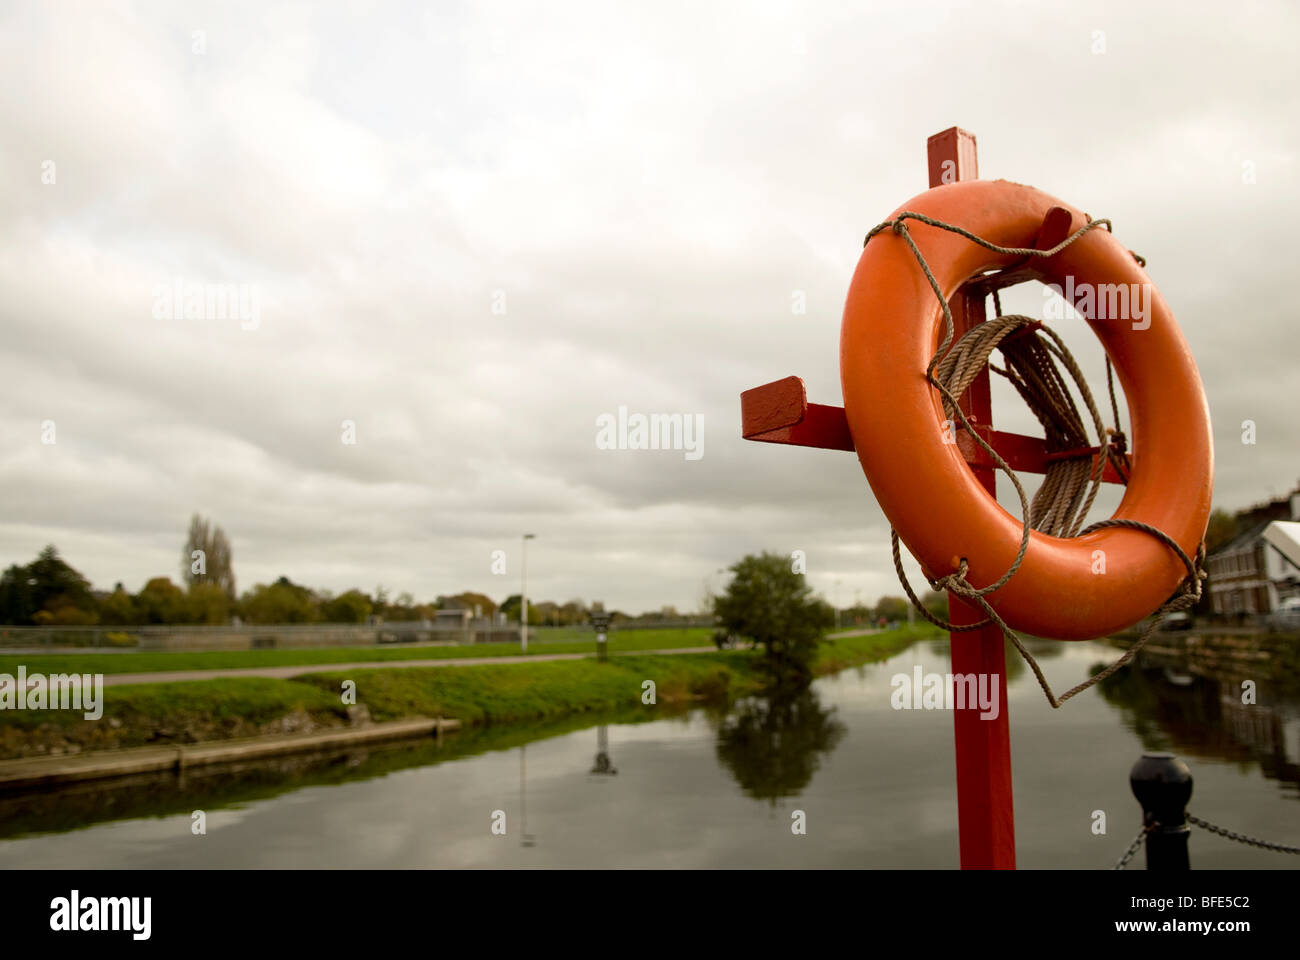 life saving ring next to canal on a cloudy day - Stock Image